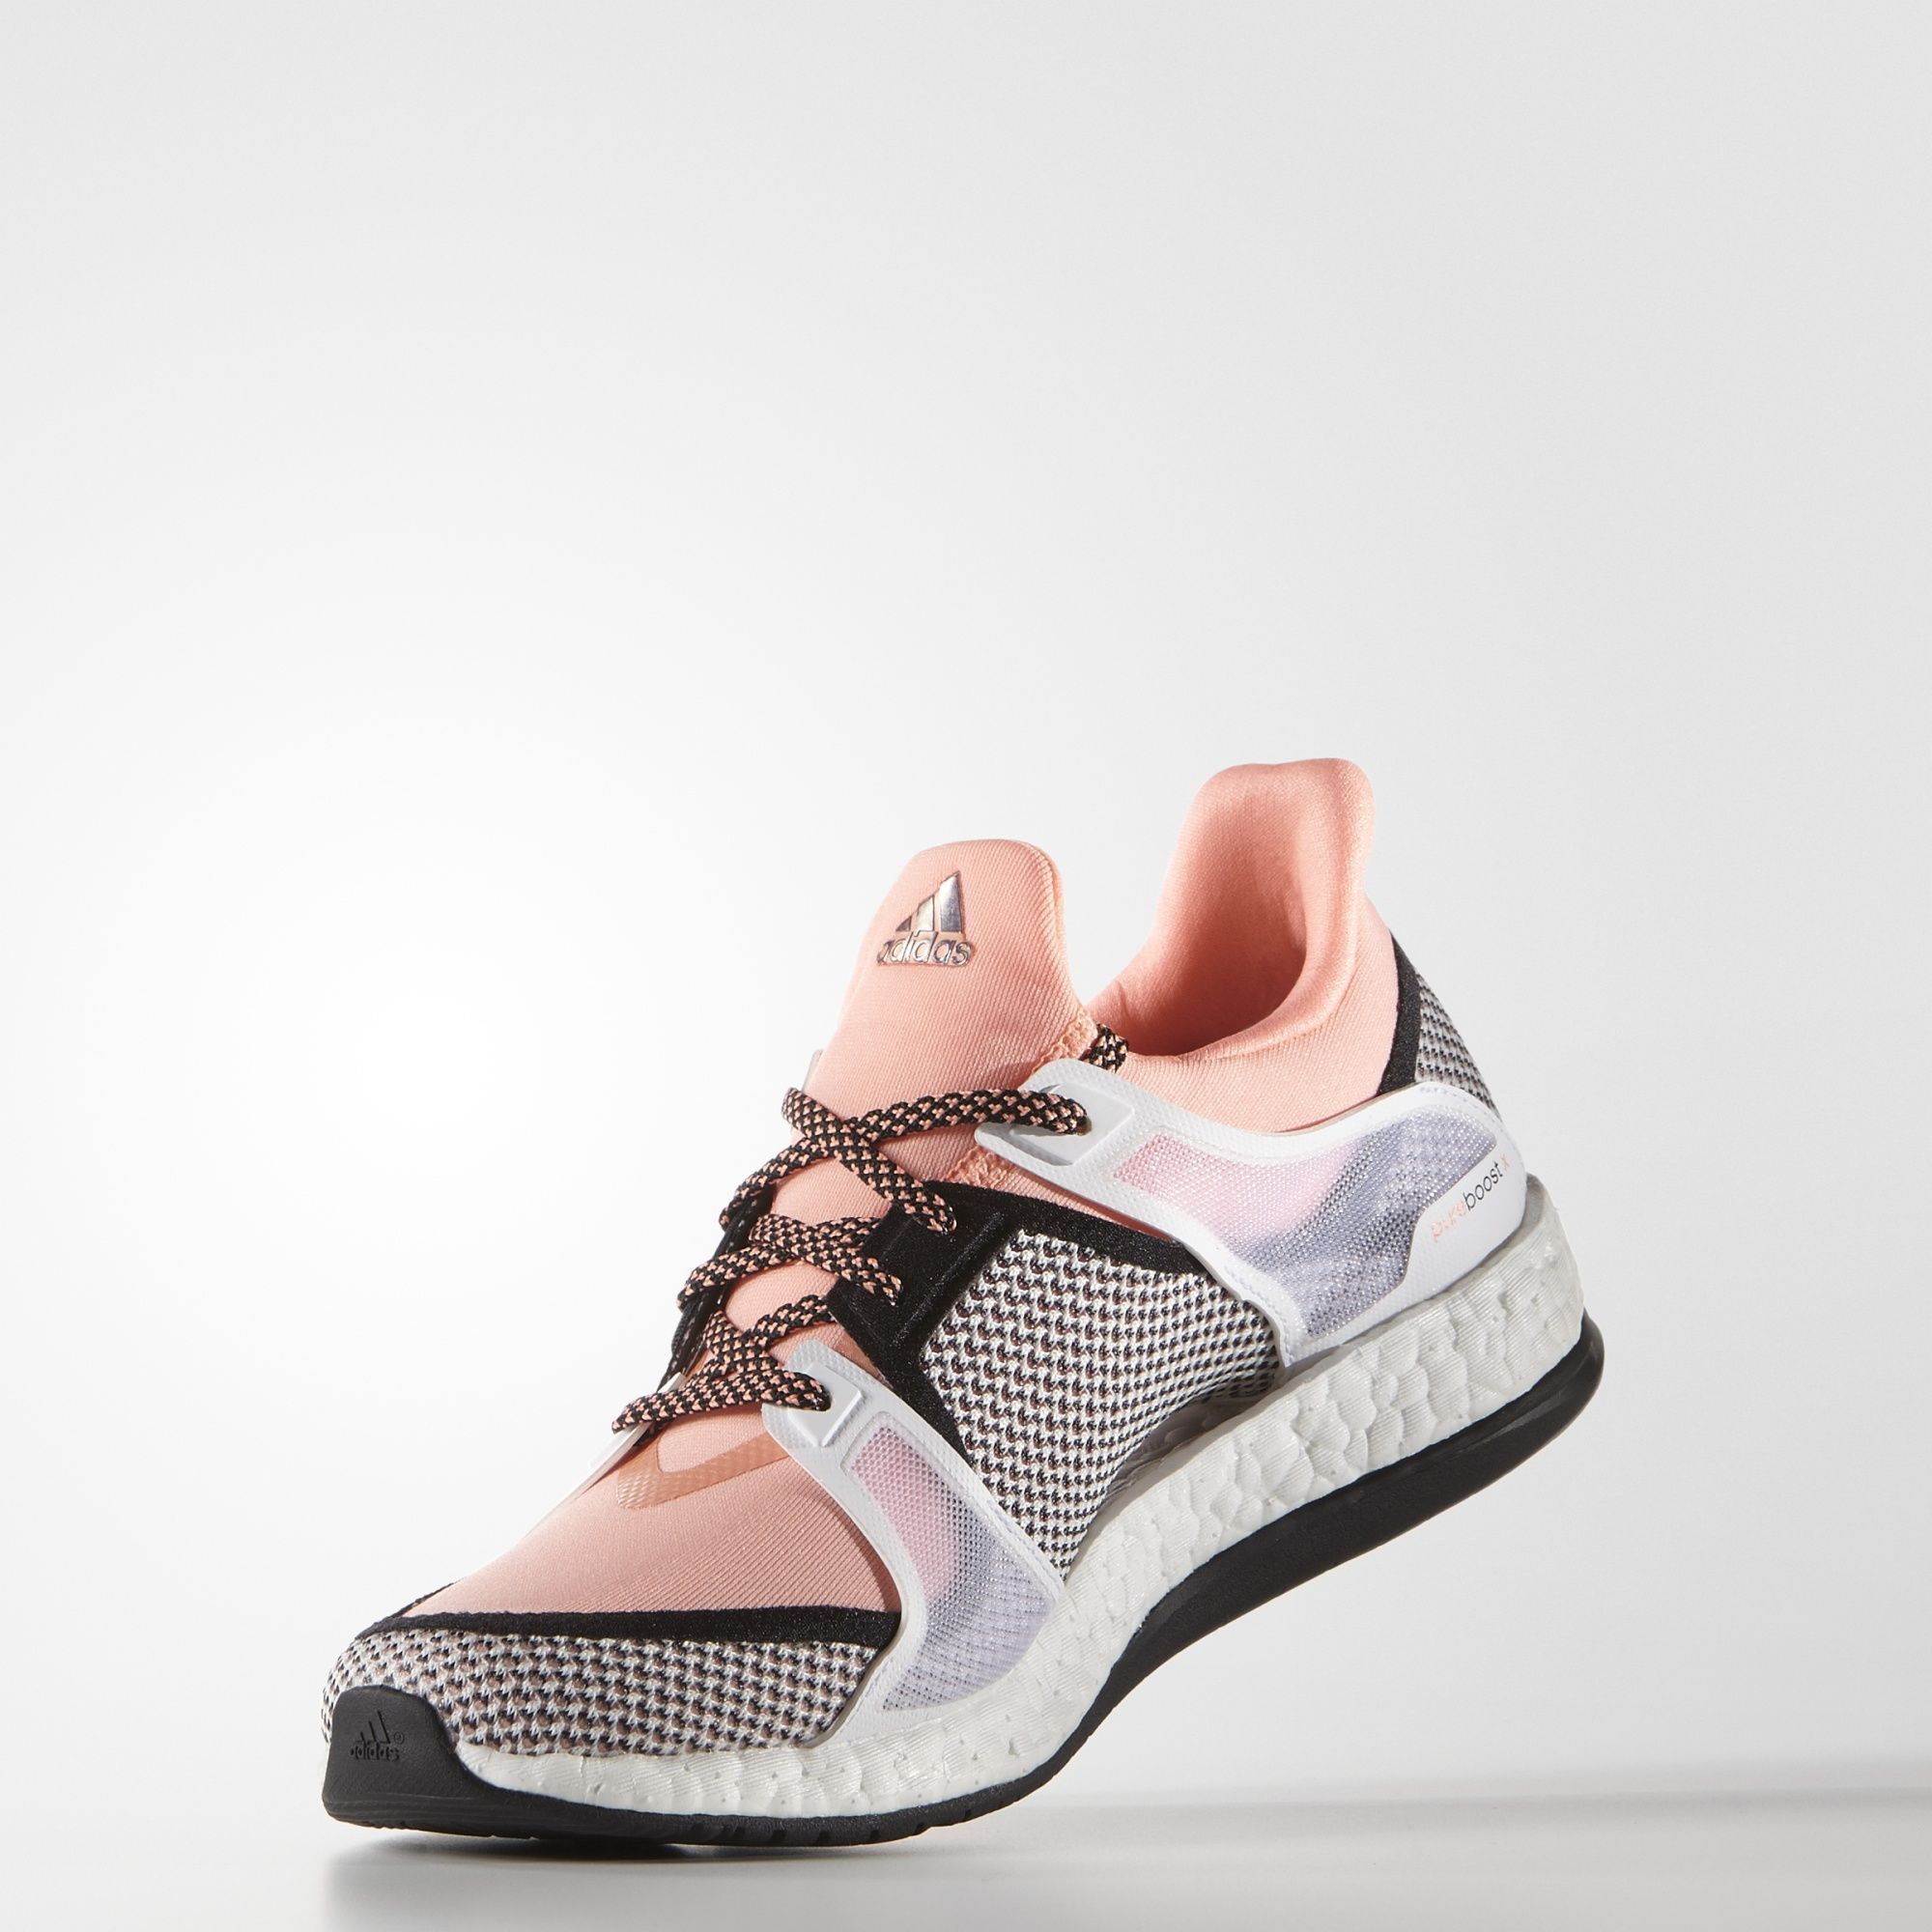 Adidas Pure Boost X Training Shoes Adidas Pure Boost Running Shoes Design Womens Training Shoes